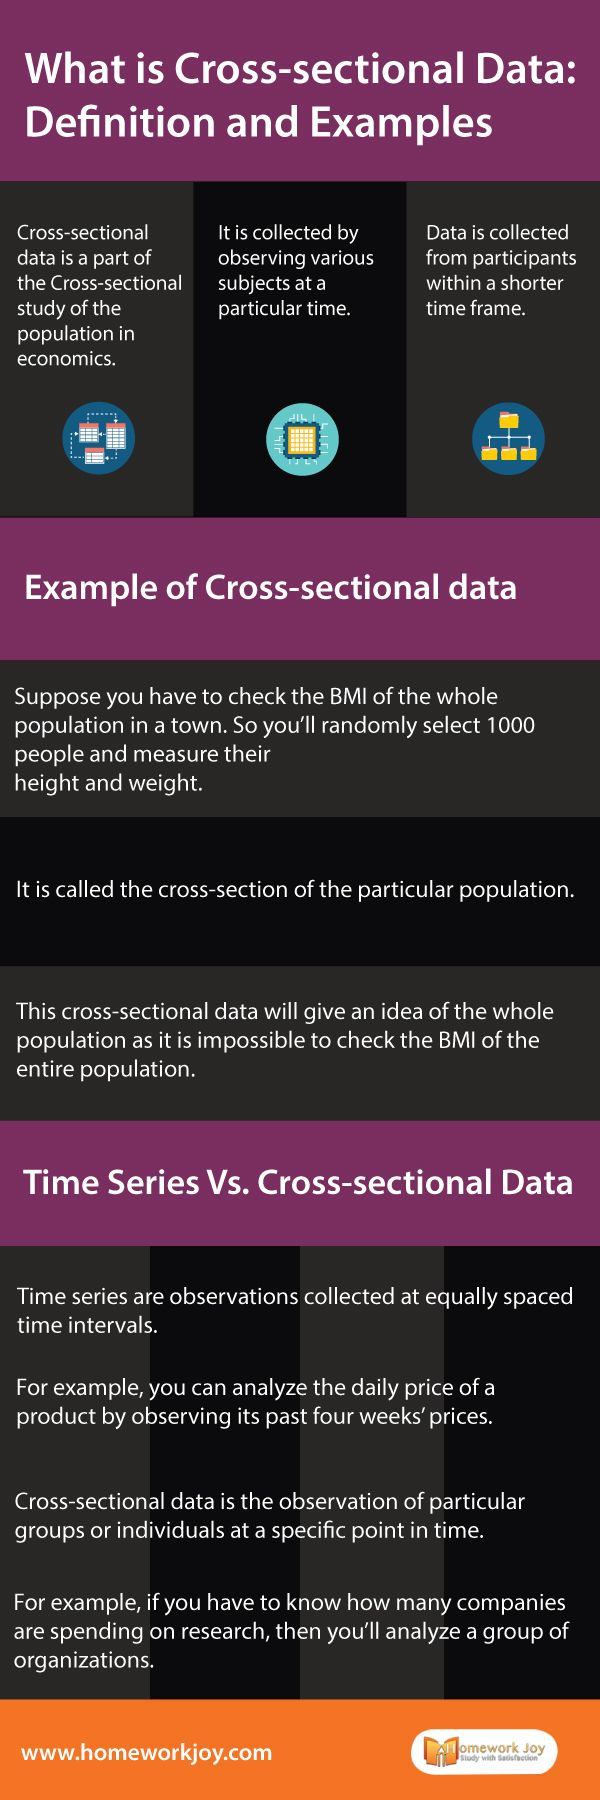 What is Cross-sectional Data | Definition and Examples in ...